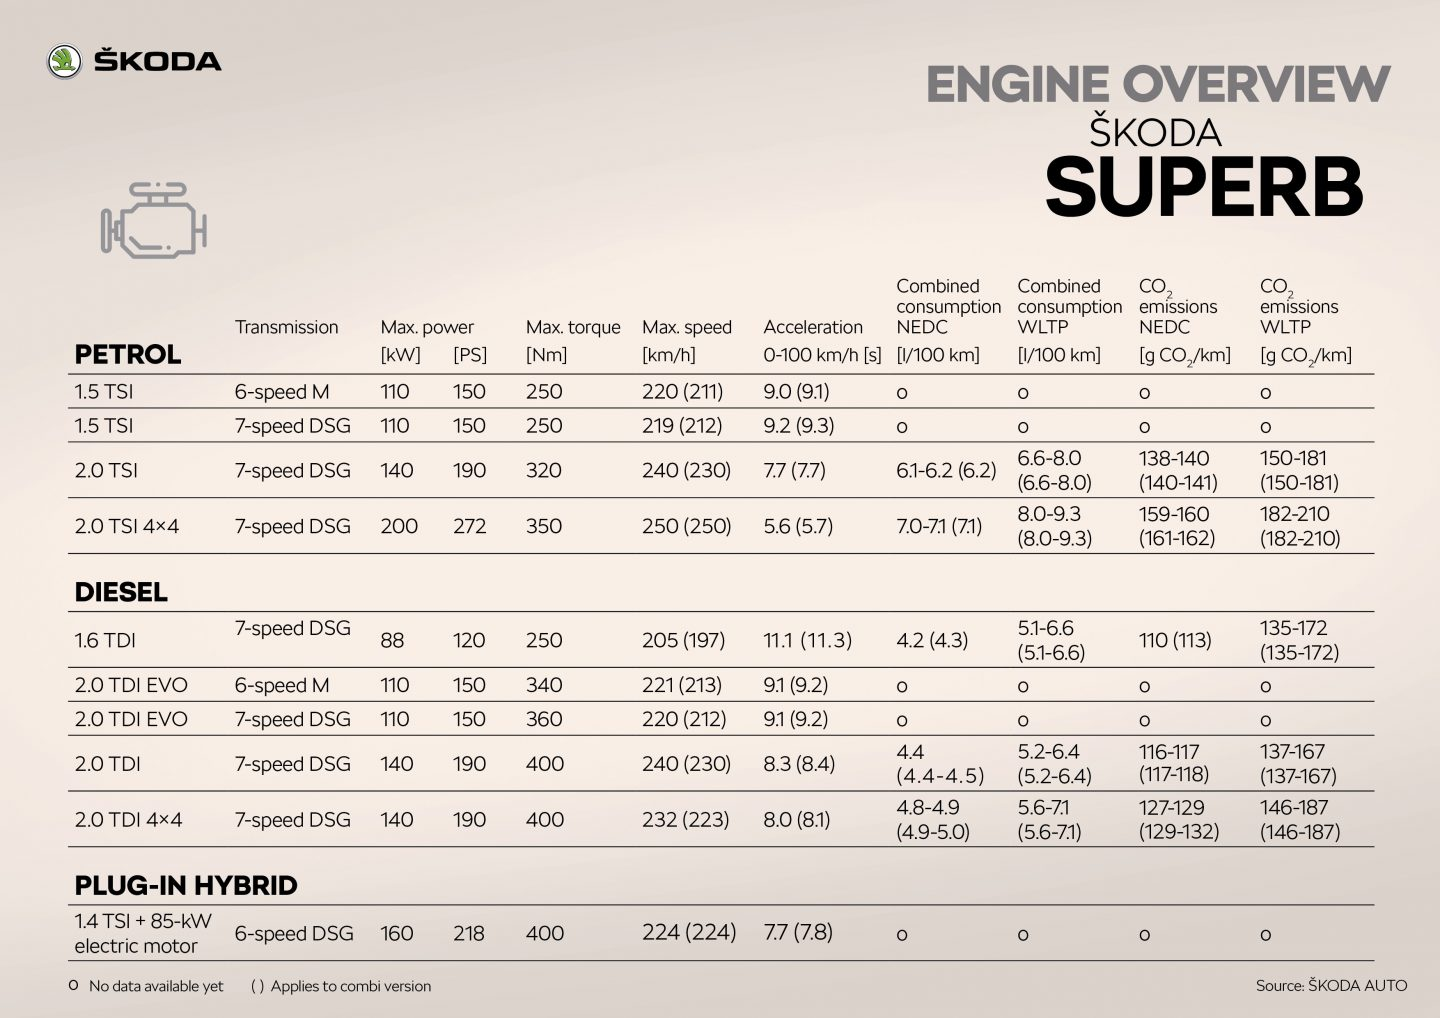 ŠKODA SUPERB Engine overview